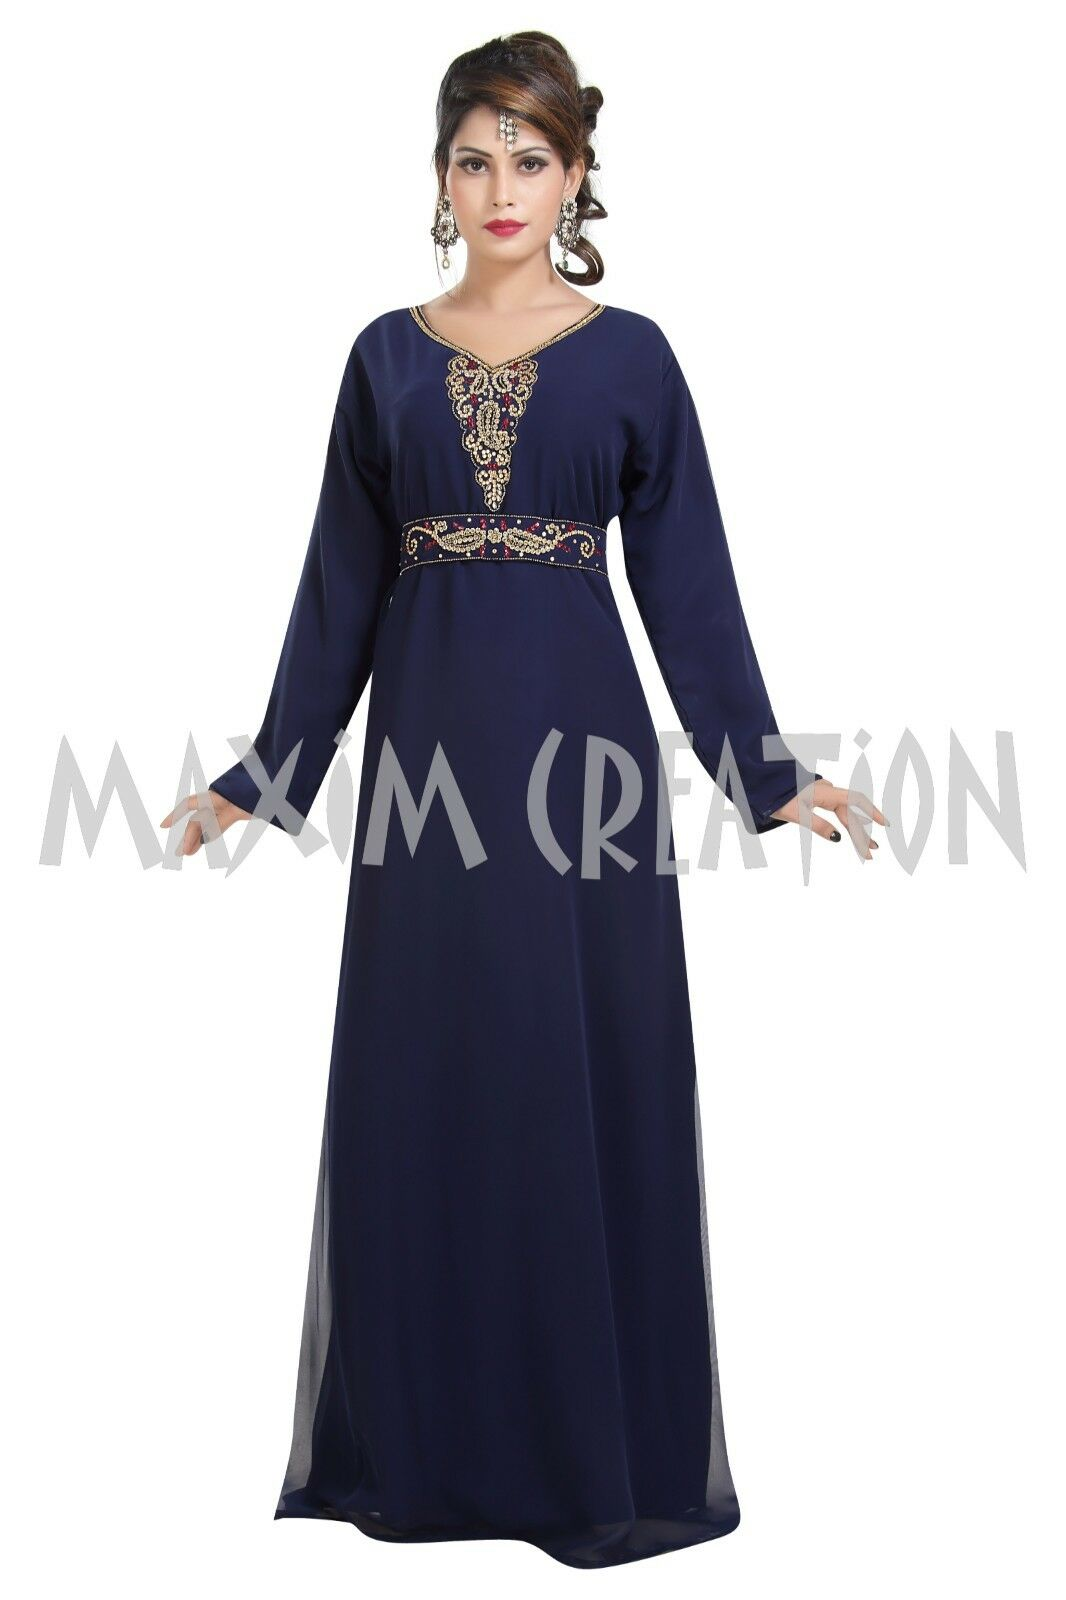 ROYAL DUBAI MgoldCCAN PARTY WEAR WEAR WEAR HAND MADE EMBROIDERY FOR WOMEN 6250 4749a8